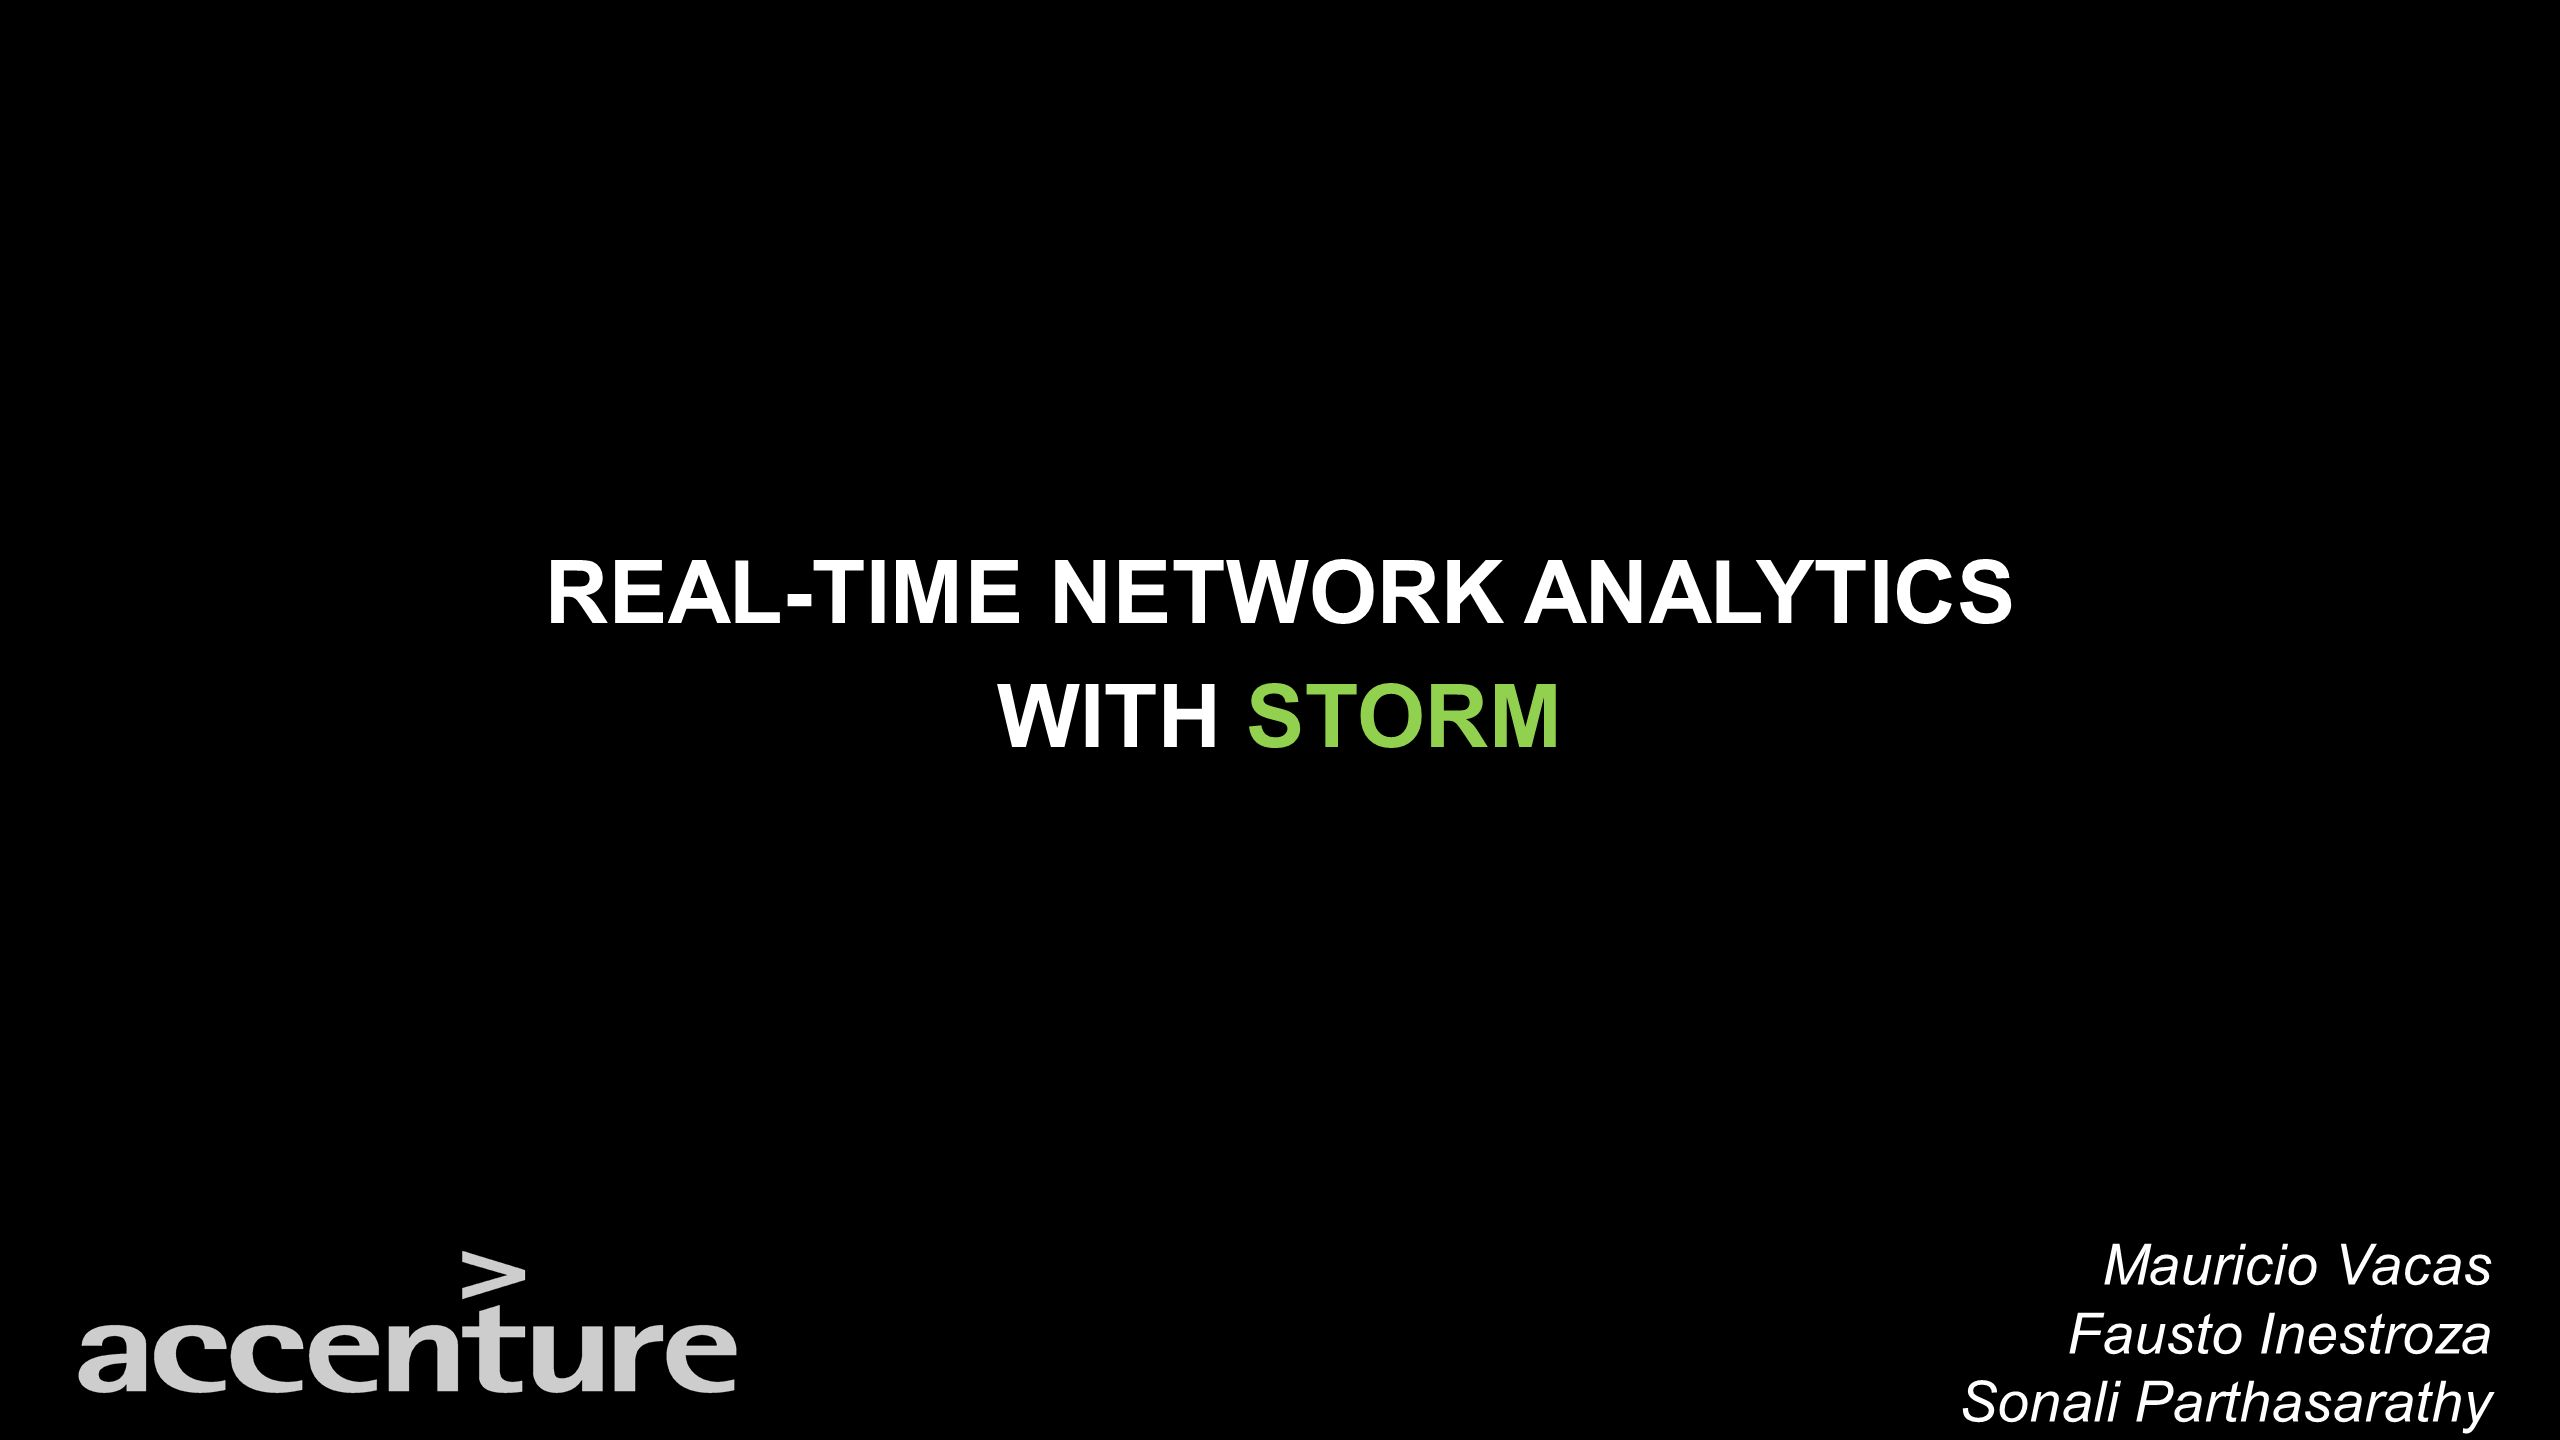 REAL-TIME NETWORK ANALYTICS WITH STORM